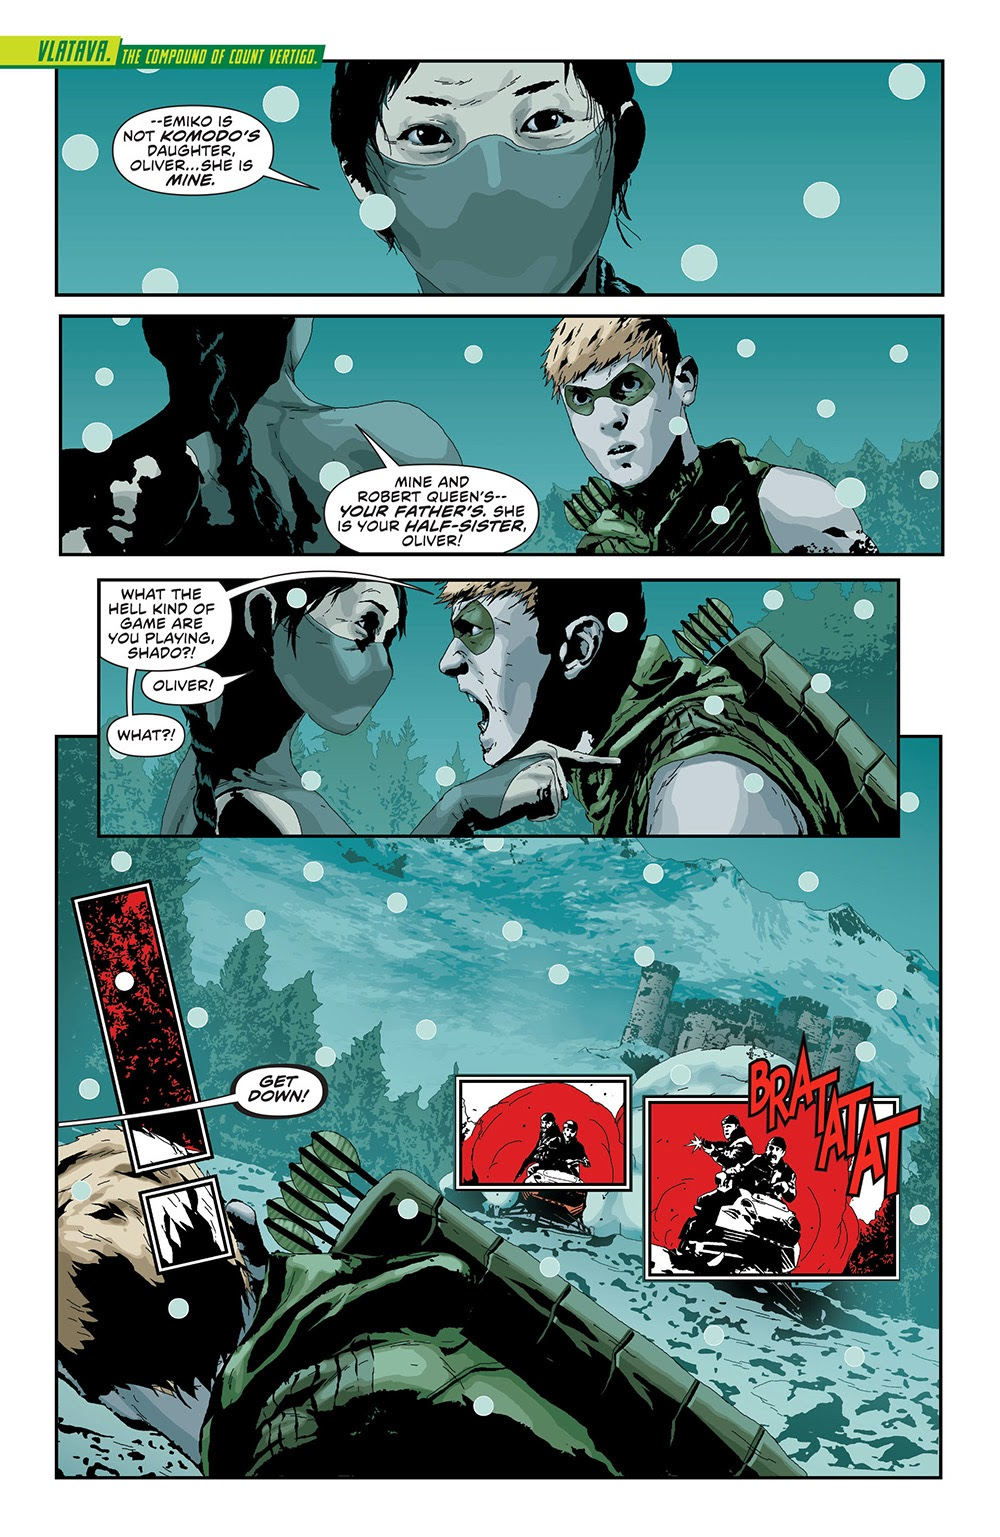 Green Arrow v6 023 (2013) …………………………